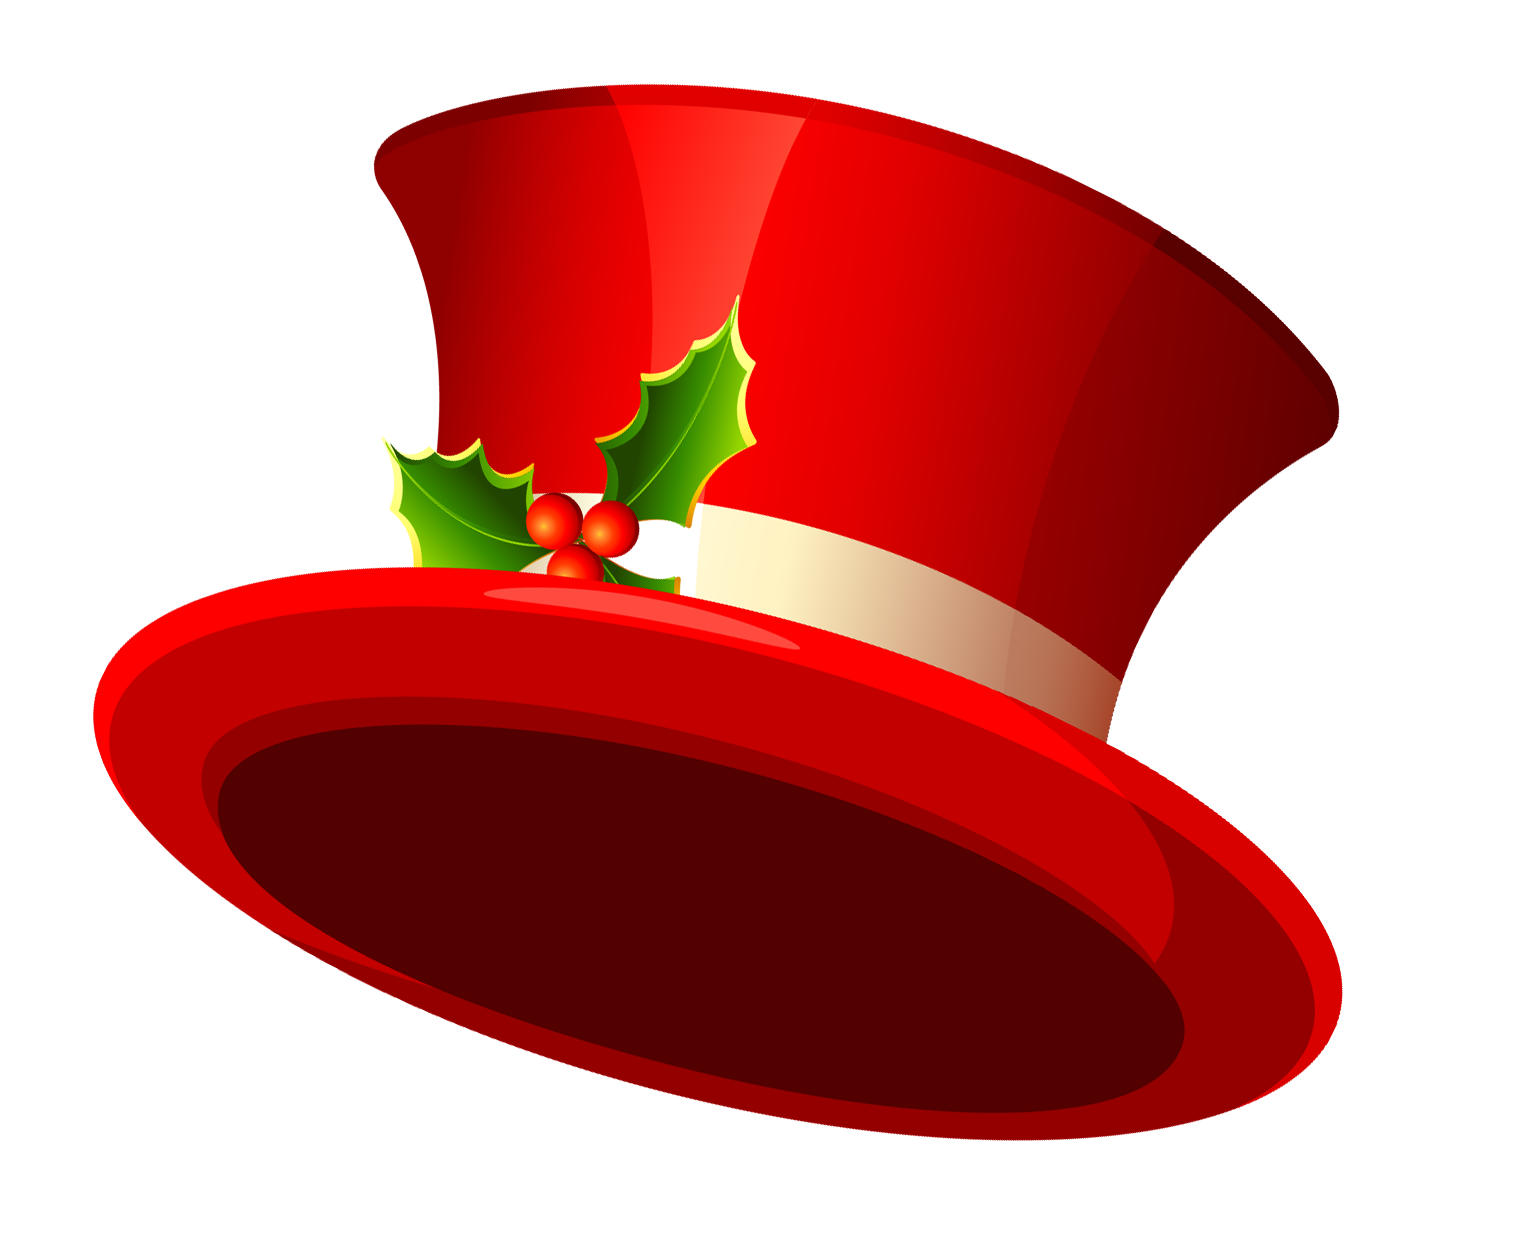 Christmas Hat Transparent.Download Top Claus Transparent Santa Hat Christmas Hq Png